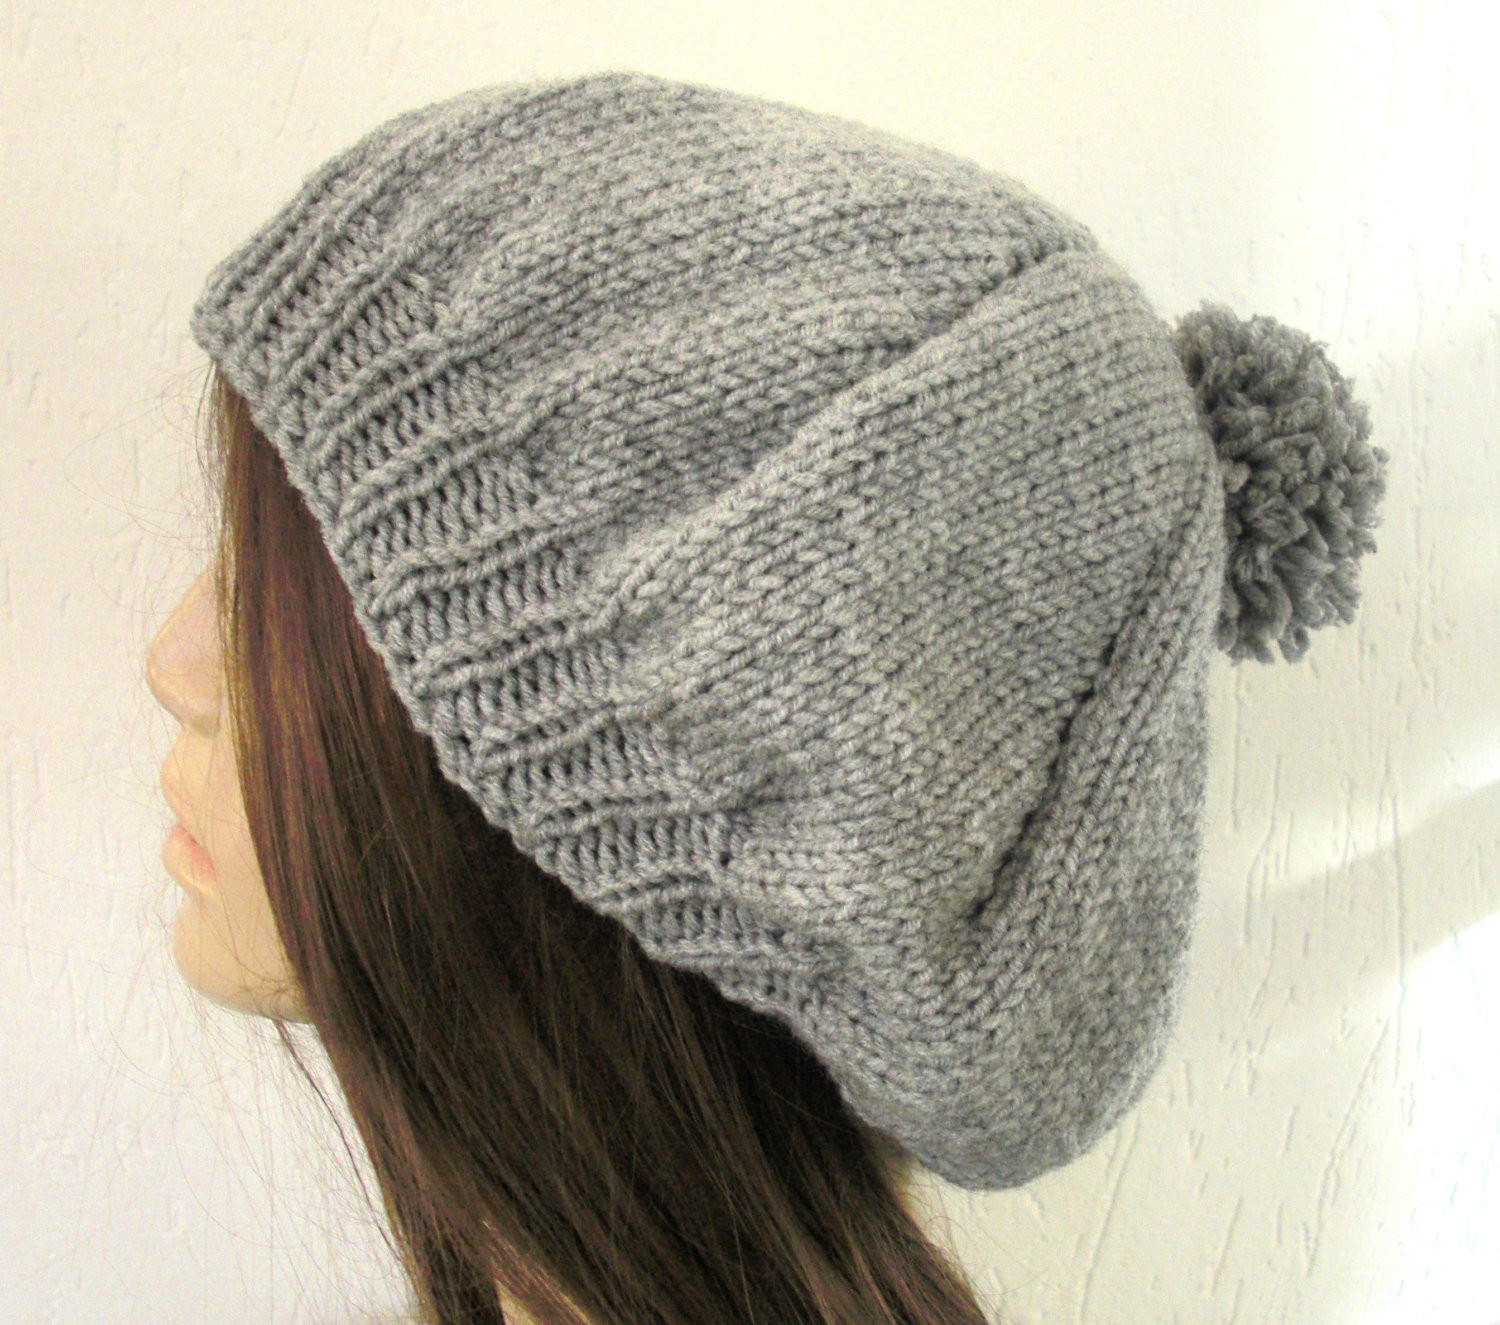 Knitting Patterns Caps : Knit Hat Patterns Search Results Calendar 2015